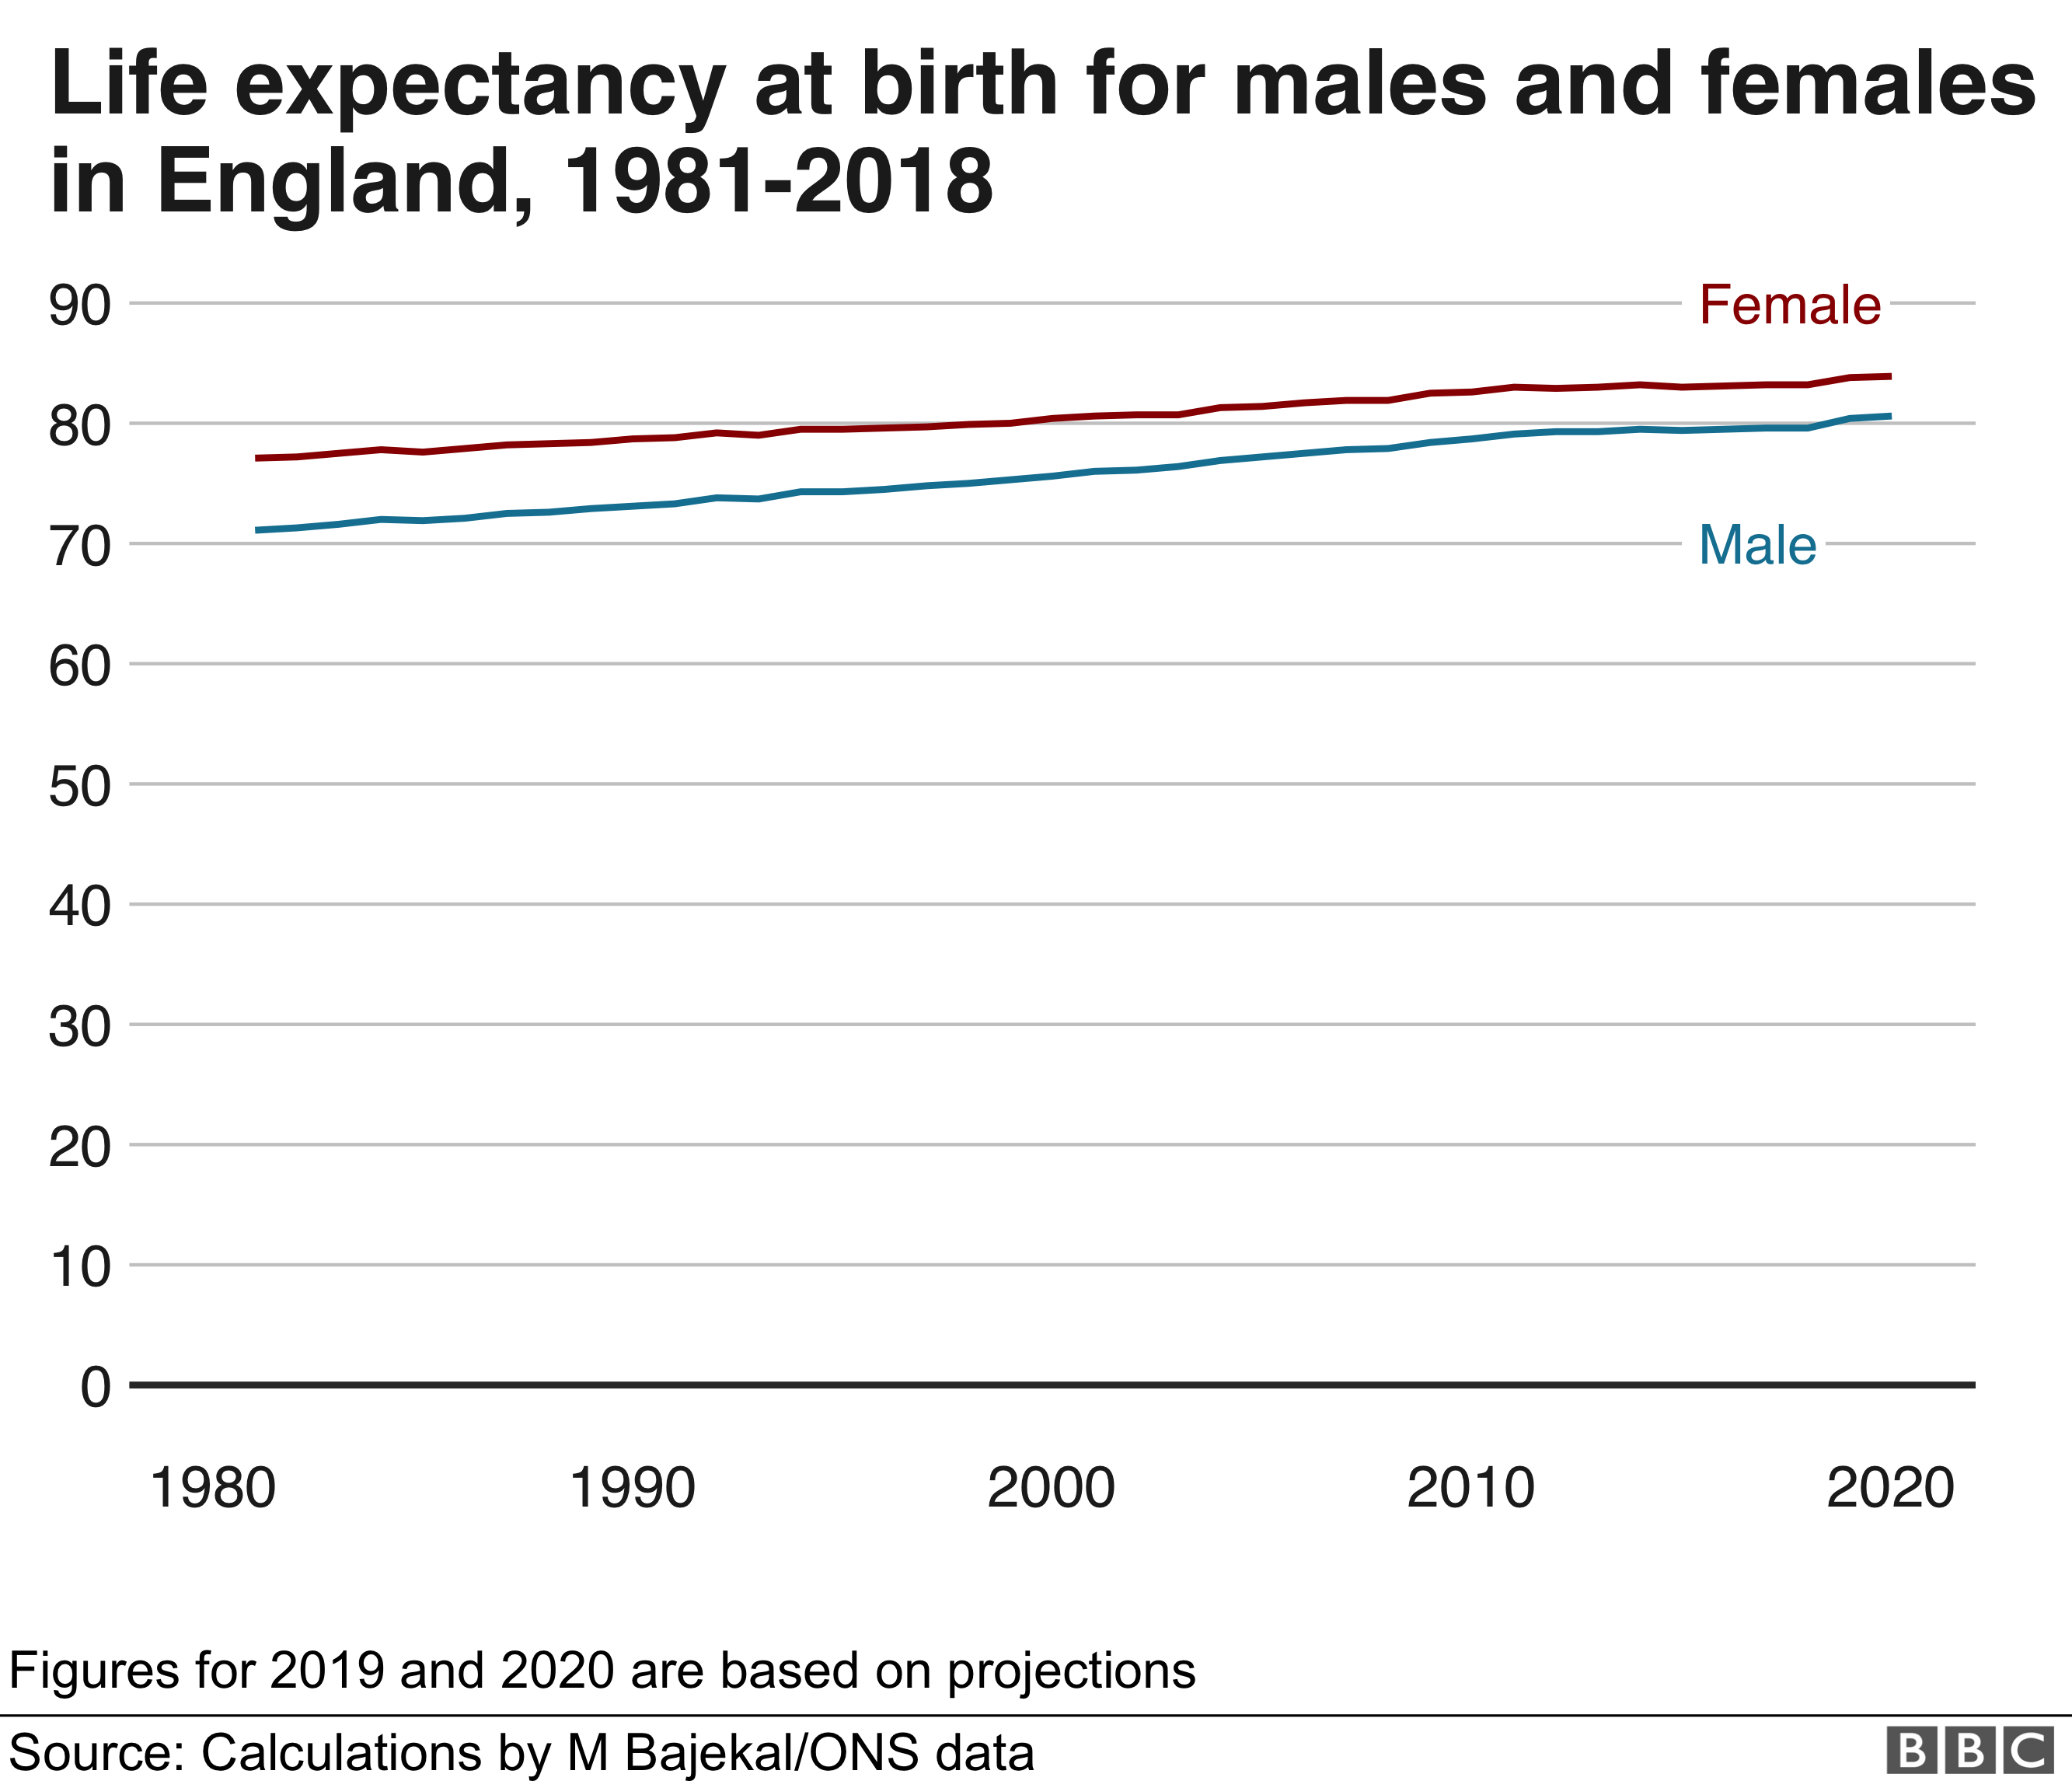 Line chart showing life expectancy for men and women in England